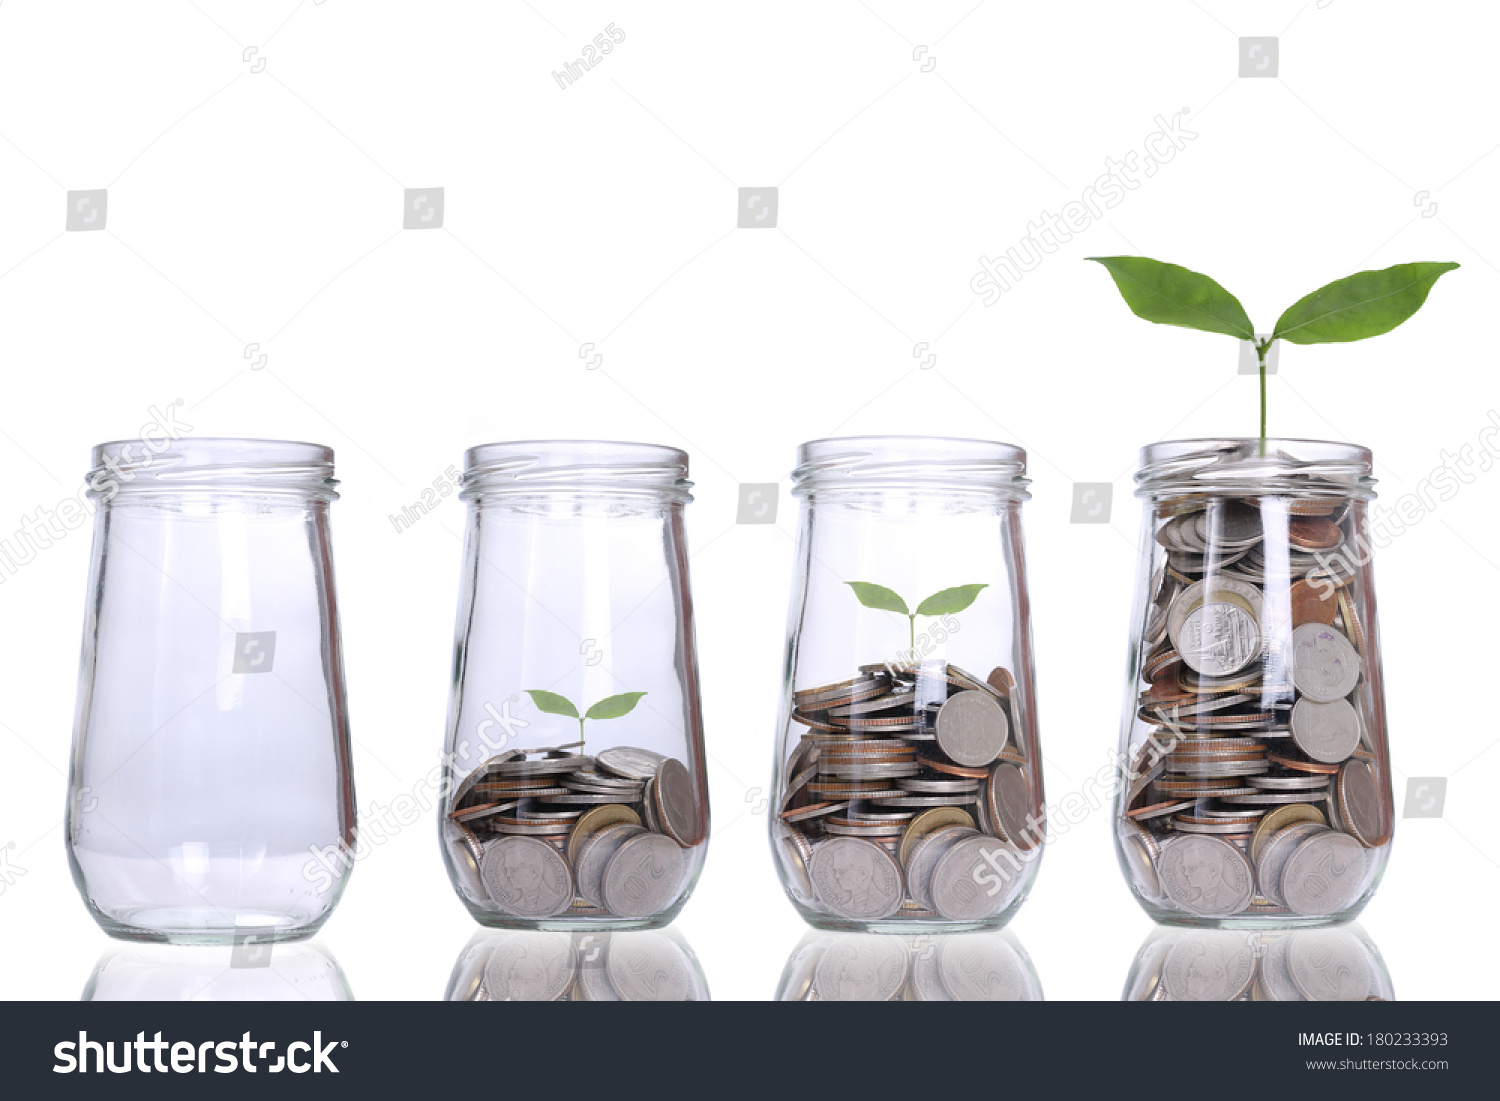 how to make money grow in a bank